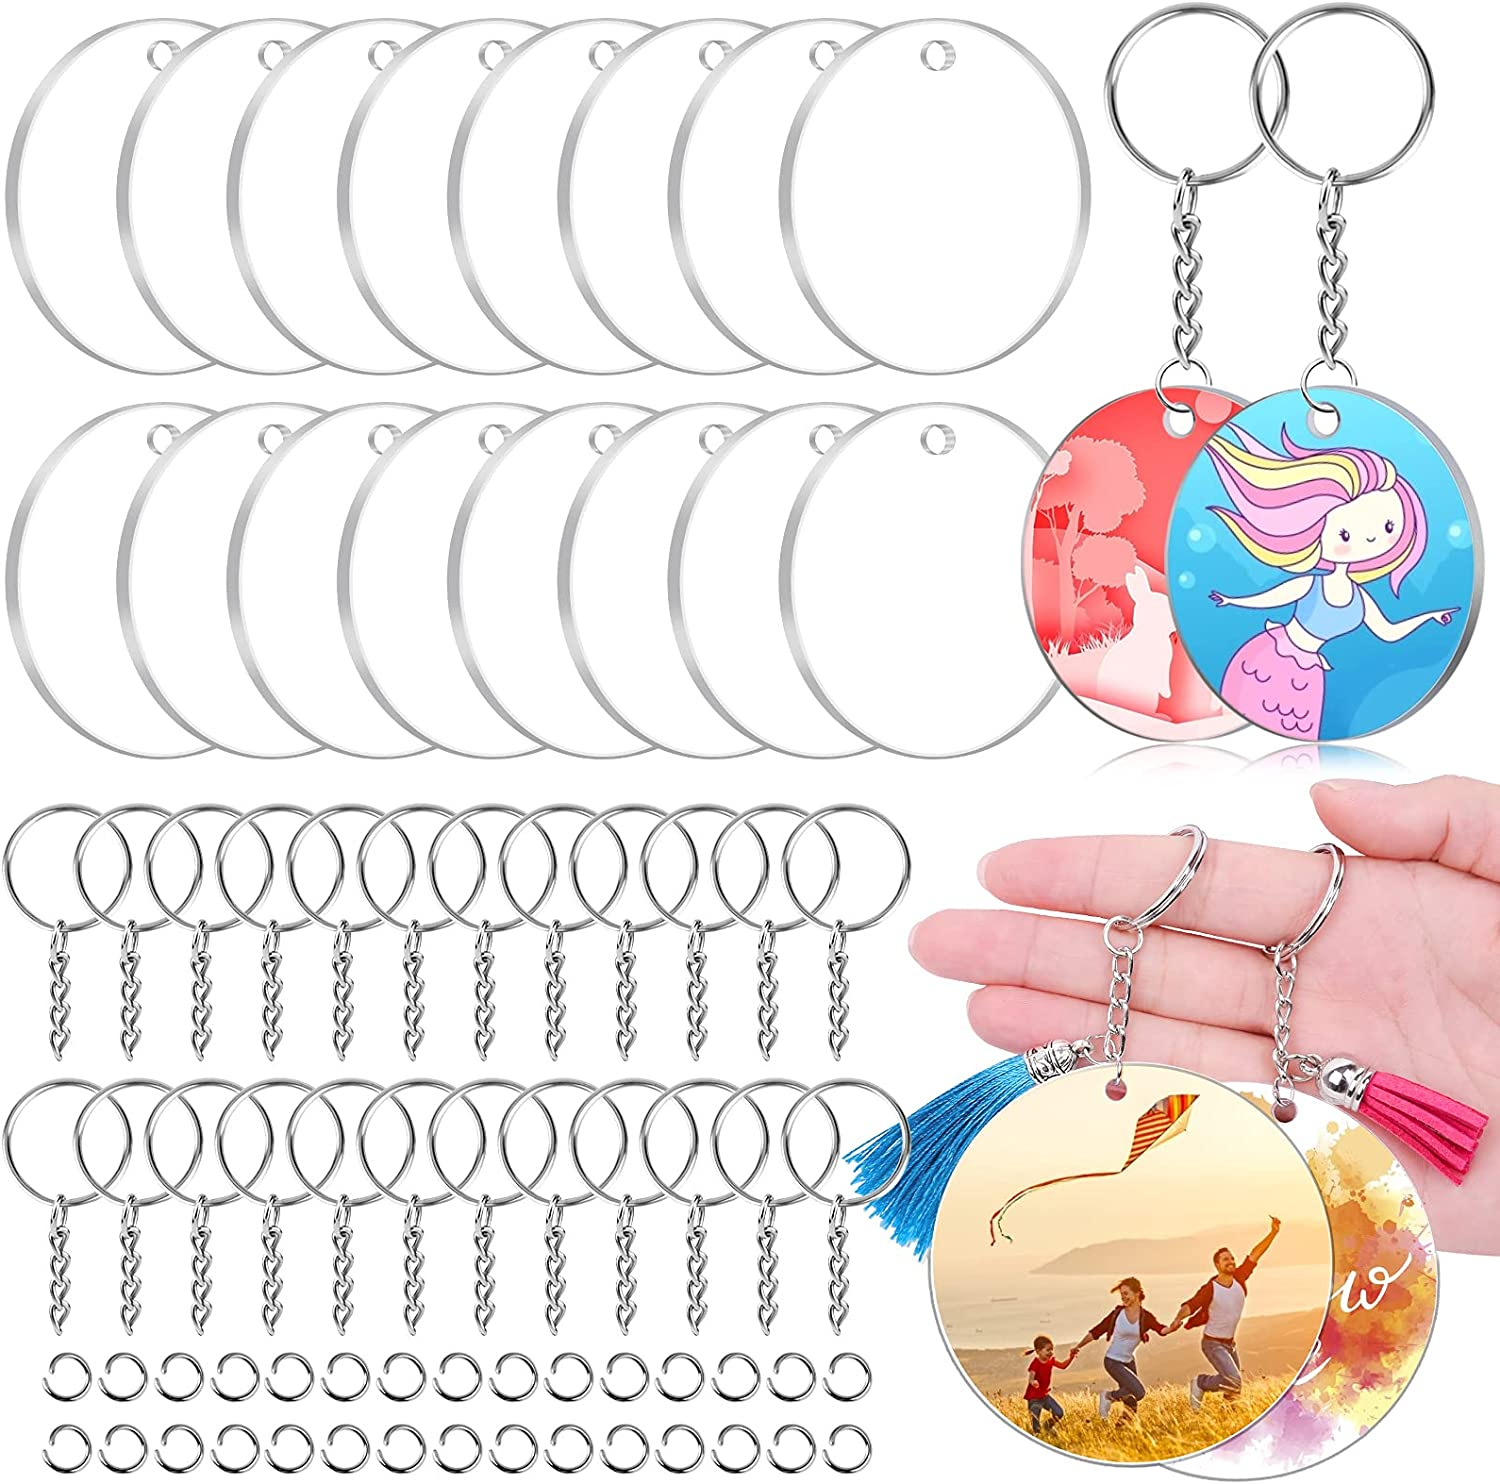 3 Inch 90 2021new shipping free Pcs Acrylic Keychain New Orleans Mall Bulk Clear Cludoo - Blanks 30